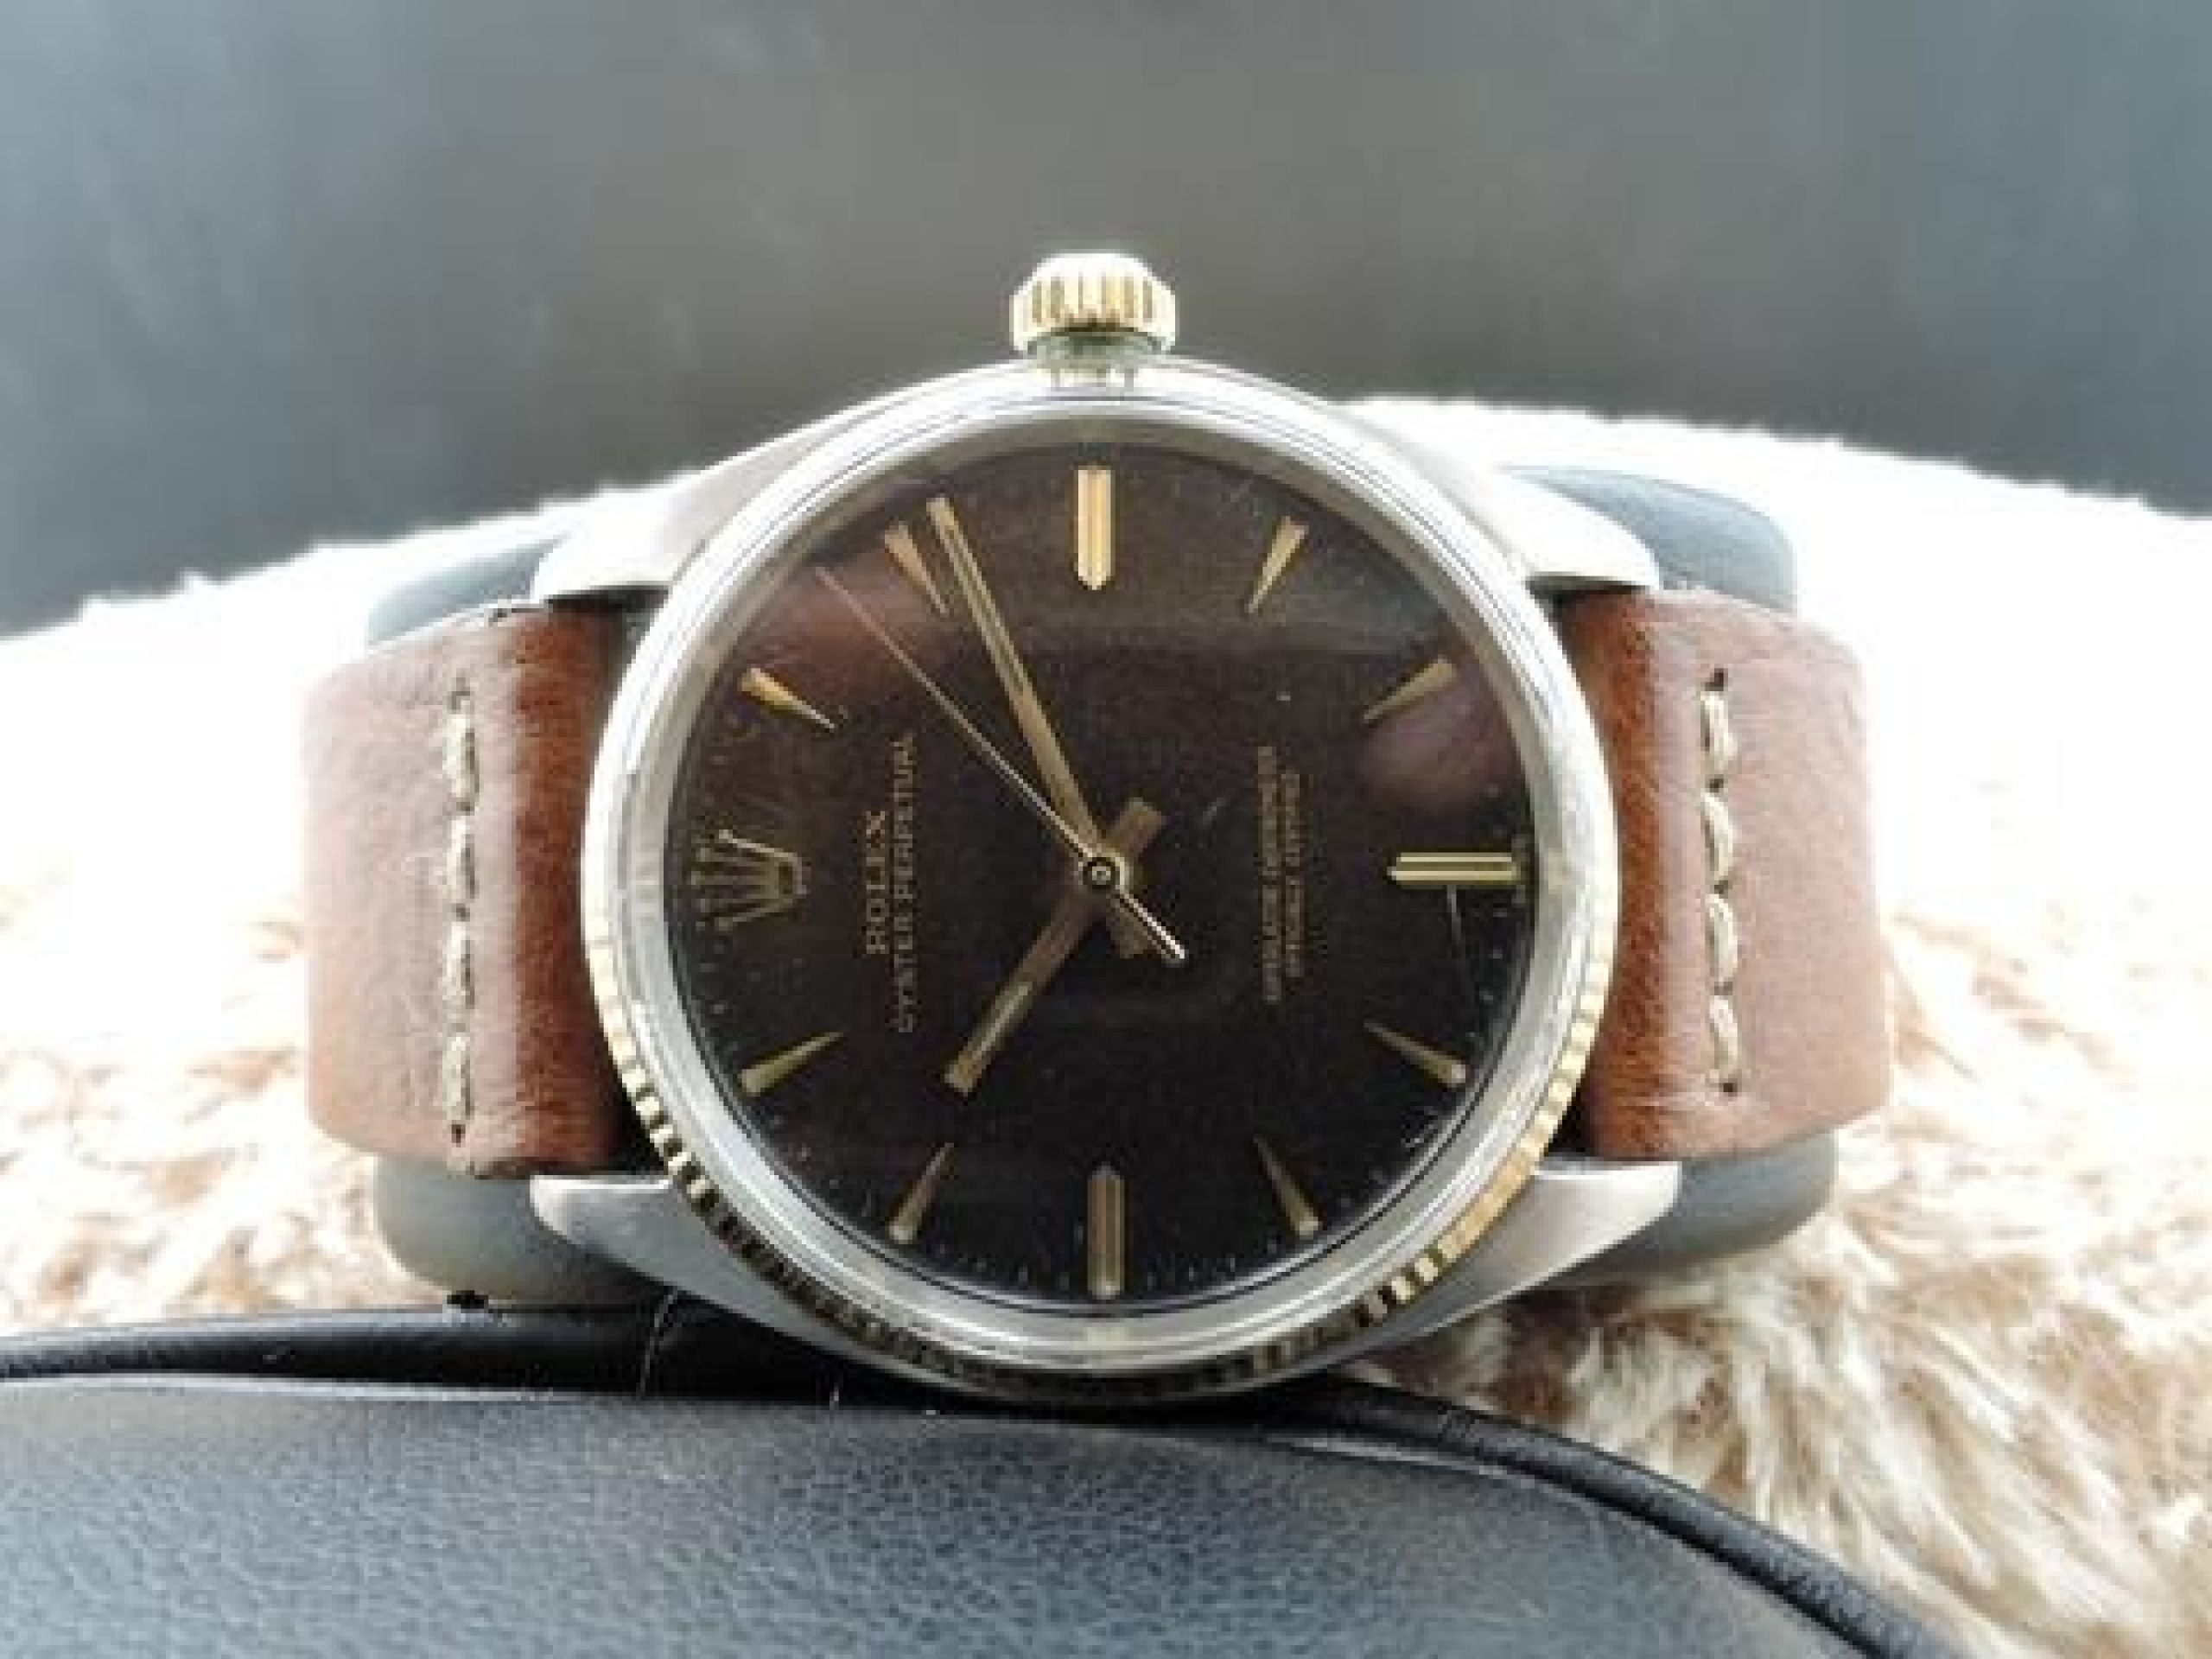 1961 ROLEX OYSTER PERPETUAL 1005 ORIGINAL TROPICAL GILT WITH FULL DOCUMENTS